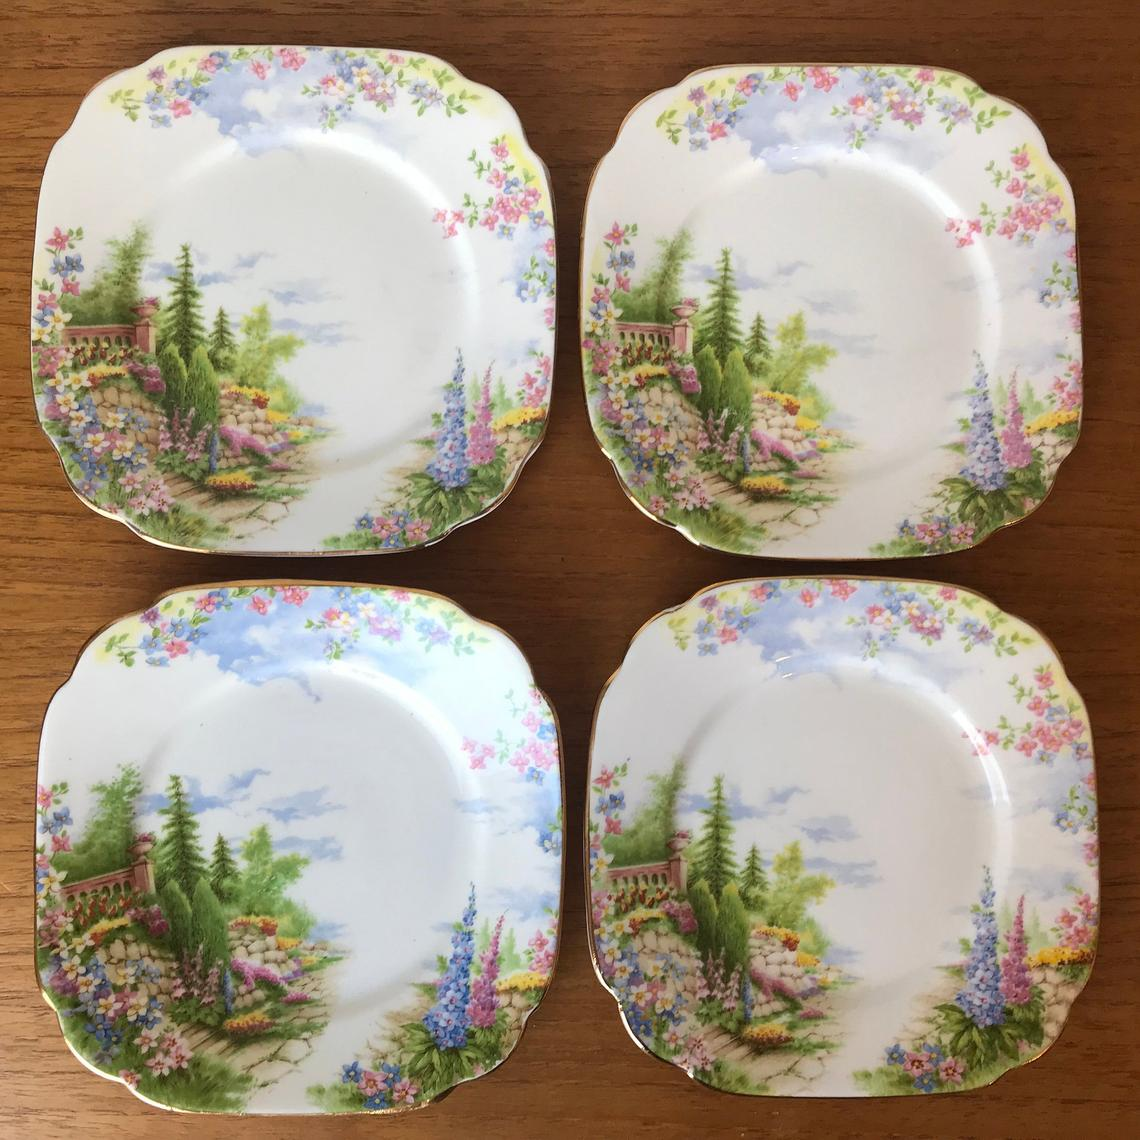 Royal Albert Kentish Rockery Bread and Butter Plates, Scenic Floral Side Plates, Fine Bone China Dishes Dinnerware